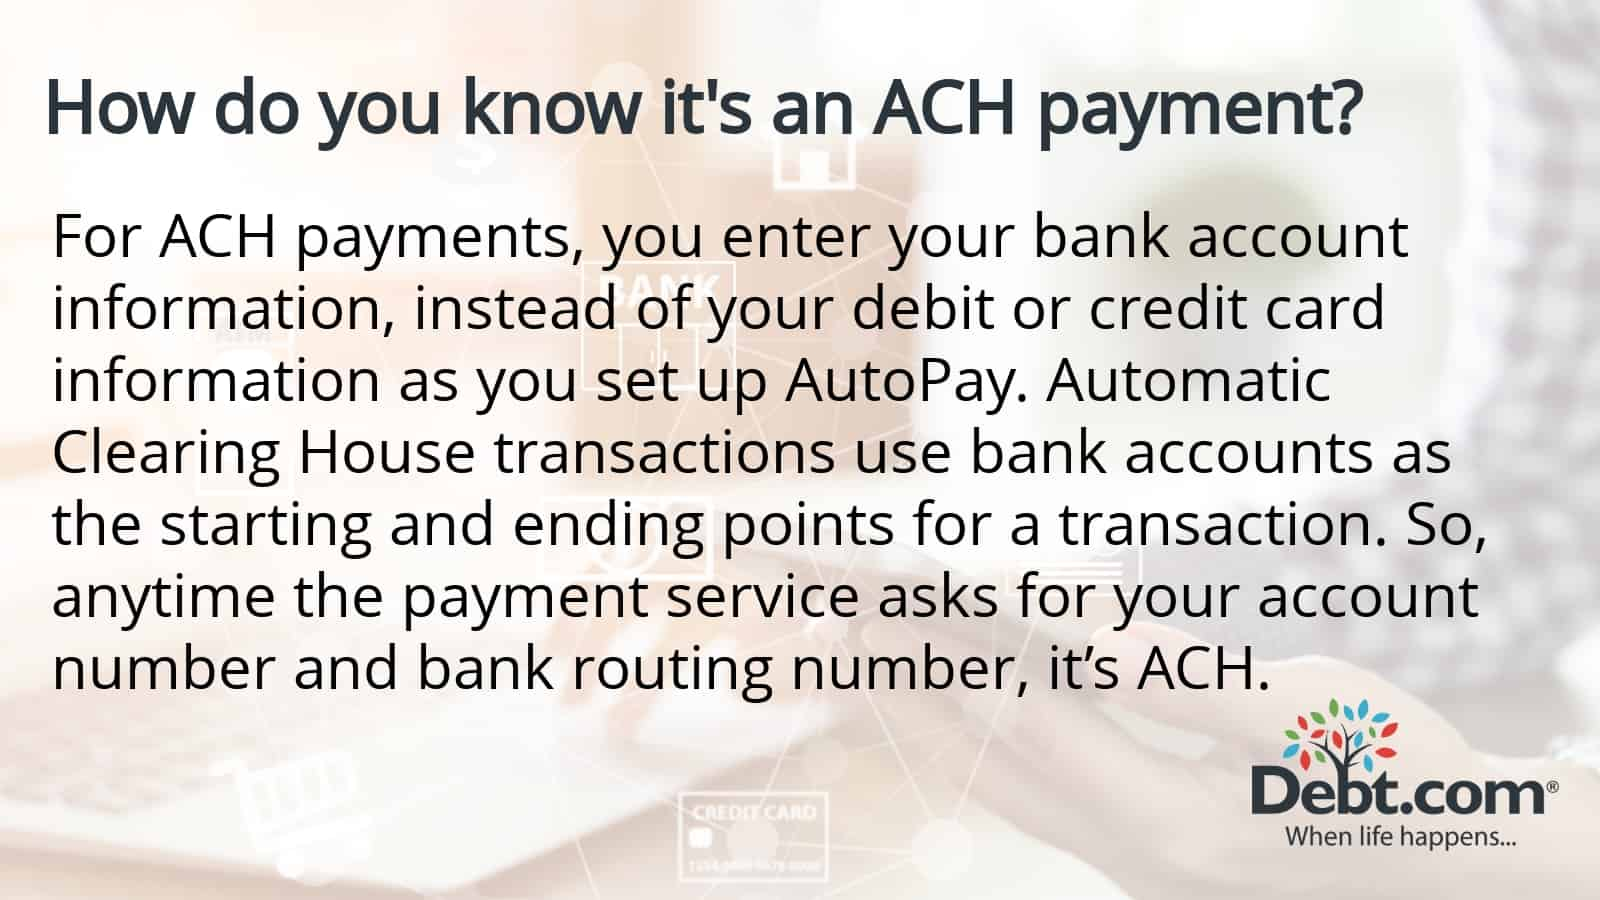 How do you know it's an ACH payment? Anytime the payment service asks for your account and bank routing number